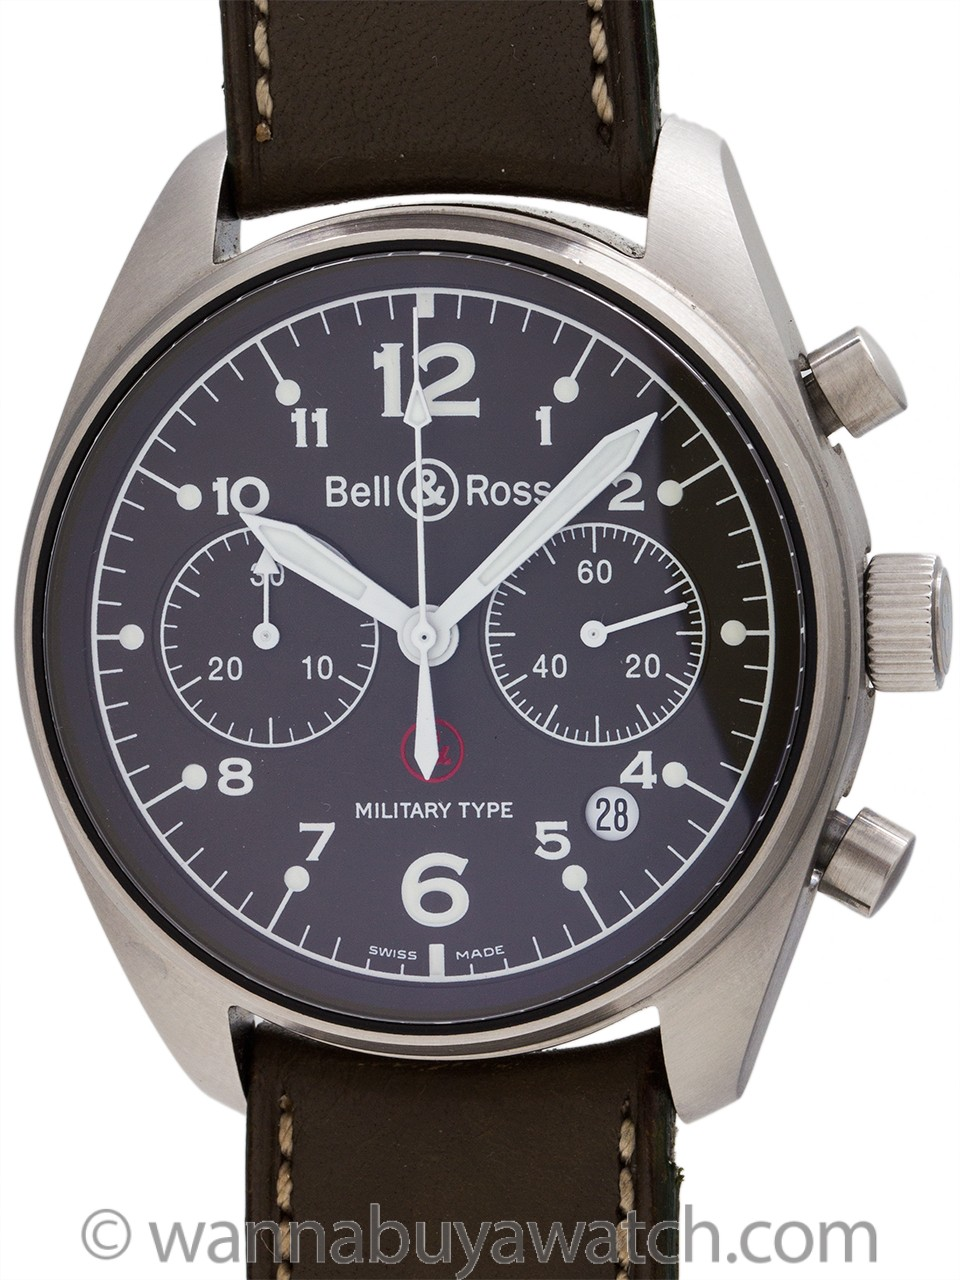 Bell & Ross 126 MS Military Type Limited Edition 477/999